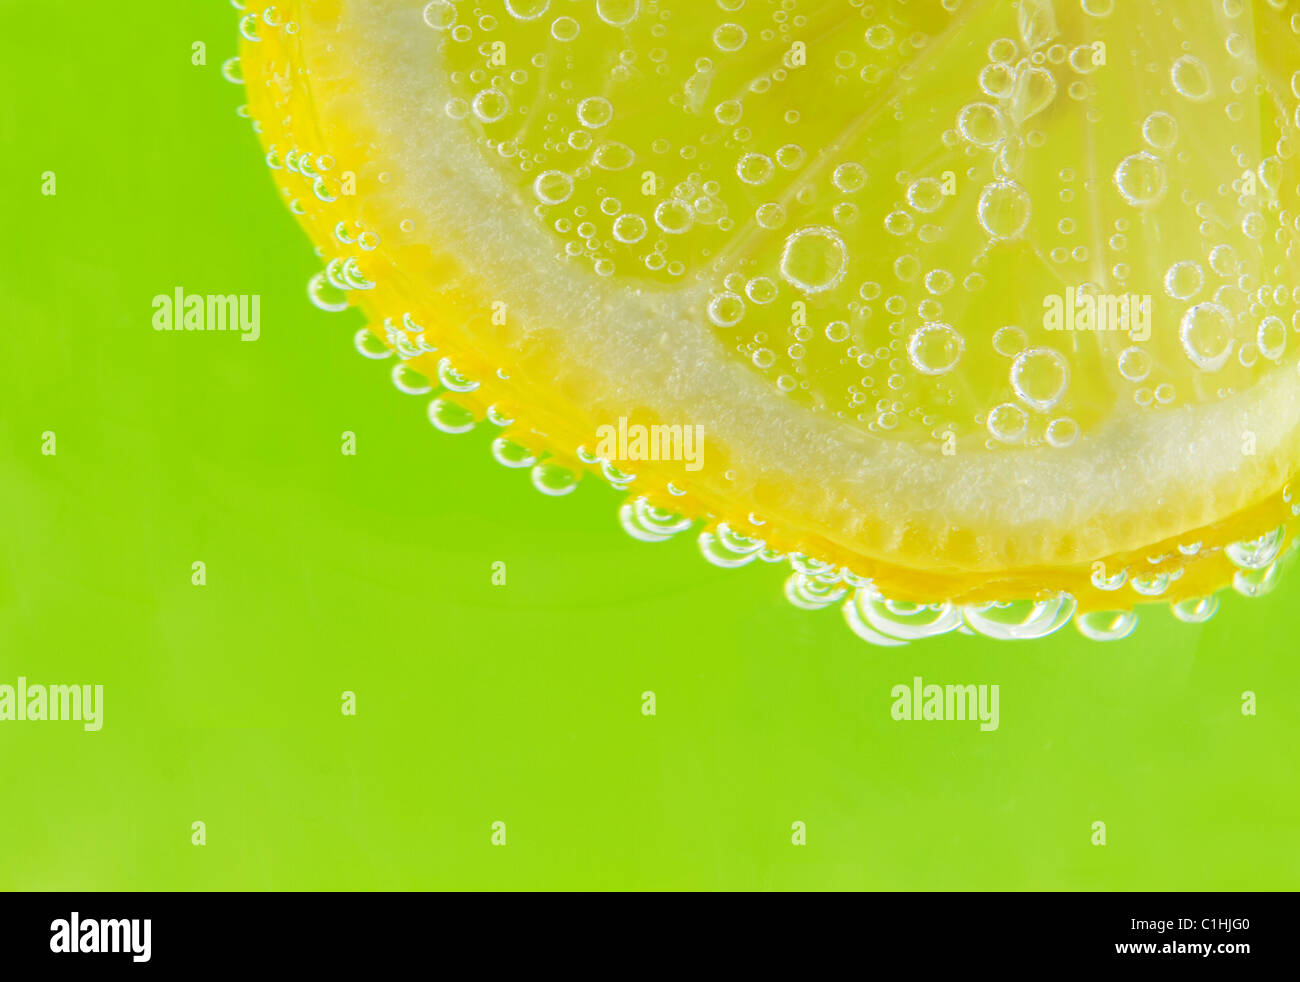 A slice of lemon is accented with seltzer bubbles against a fresh, spring green background. - Stock Image